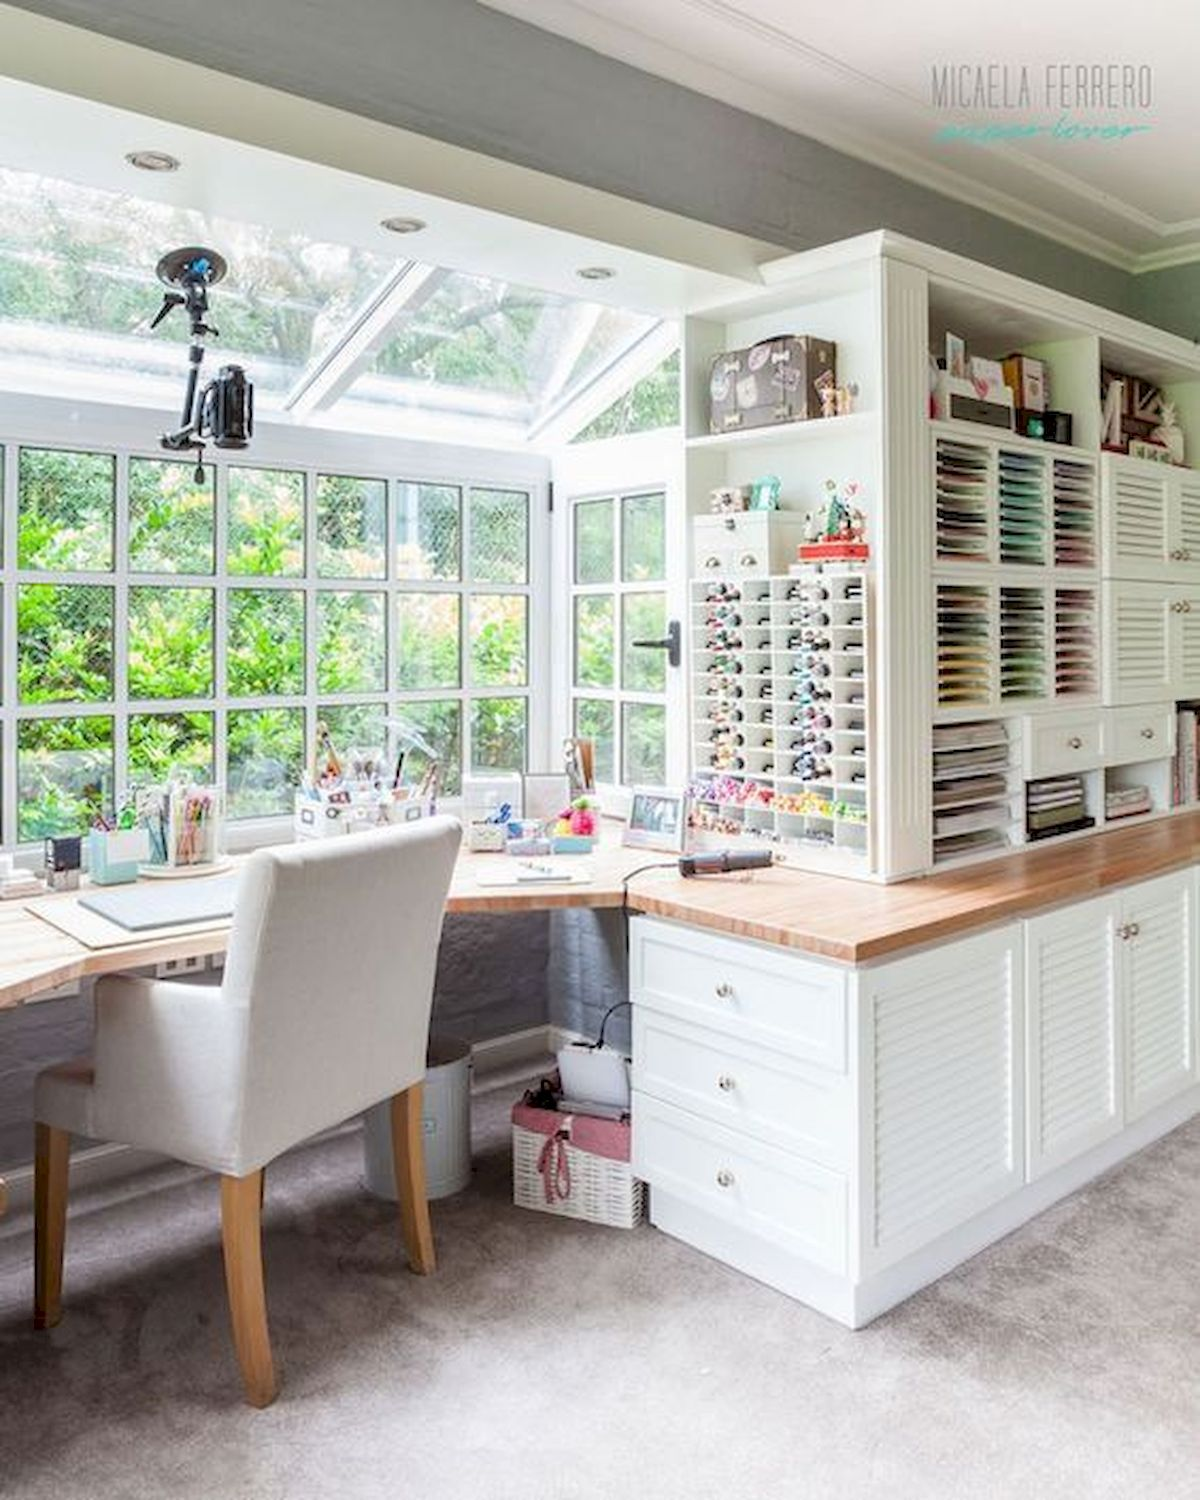 Designing A Sewing Room: 50 Most Popular Craft Room Sewing Decor Ideas (26)